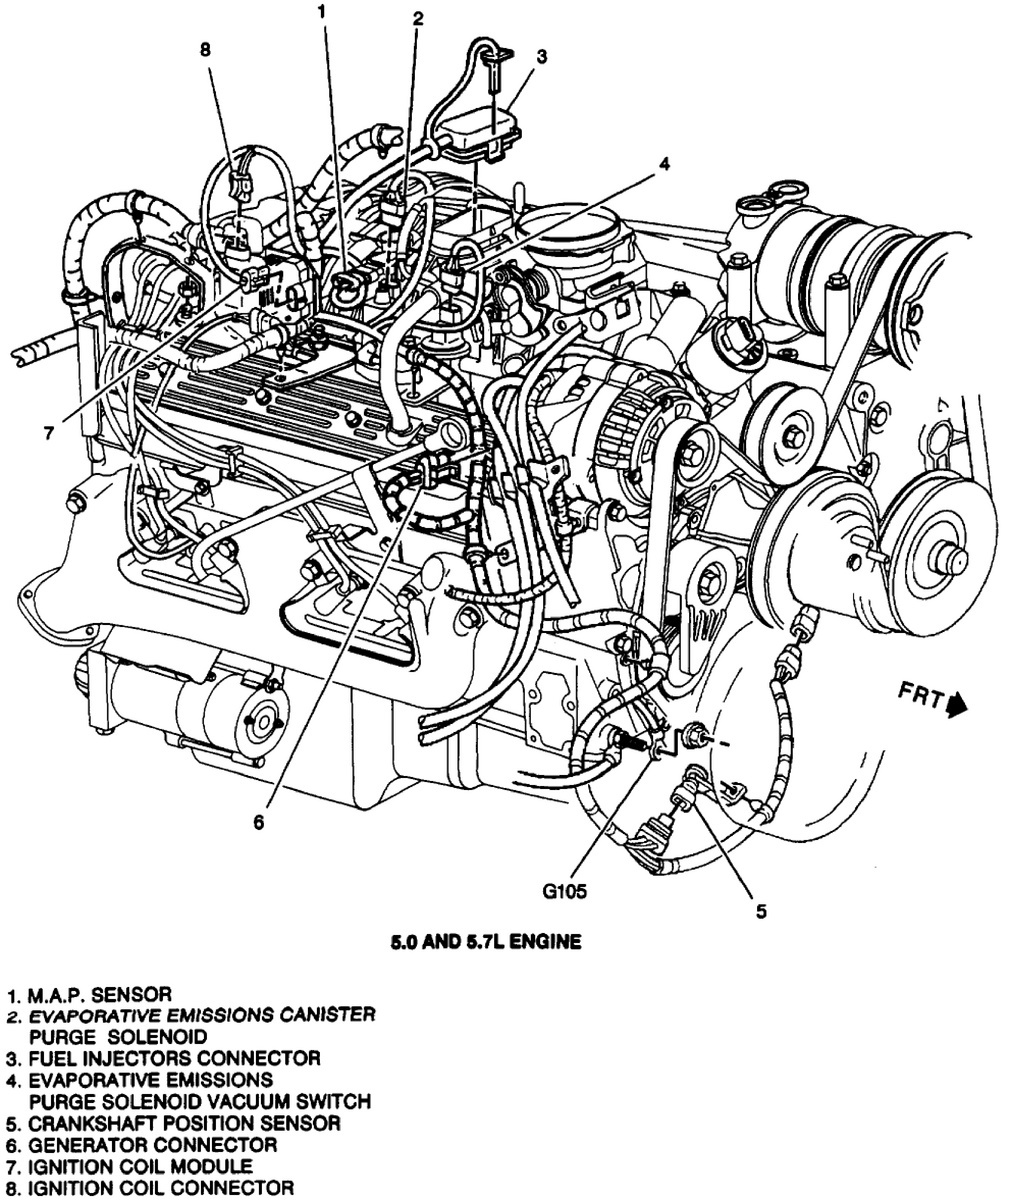 chevrolet corsica questions where is crankshaft sensor on chevy rh cargurus  com GM 3800 V6 Parts Diagram Pontiac 3.8 Supercharged Engine Diagram